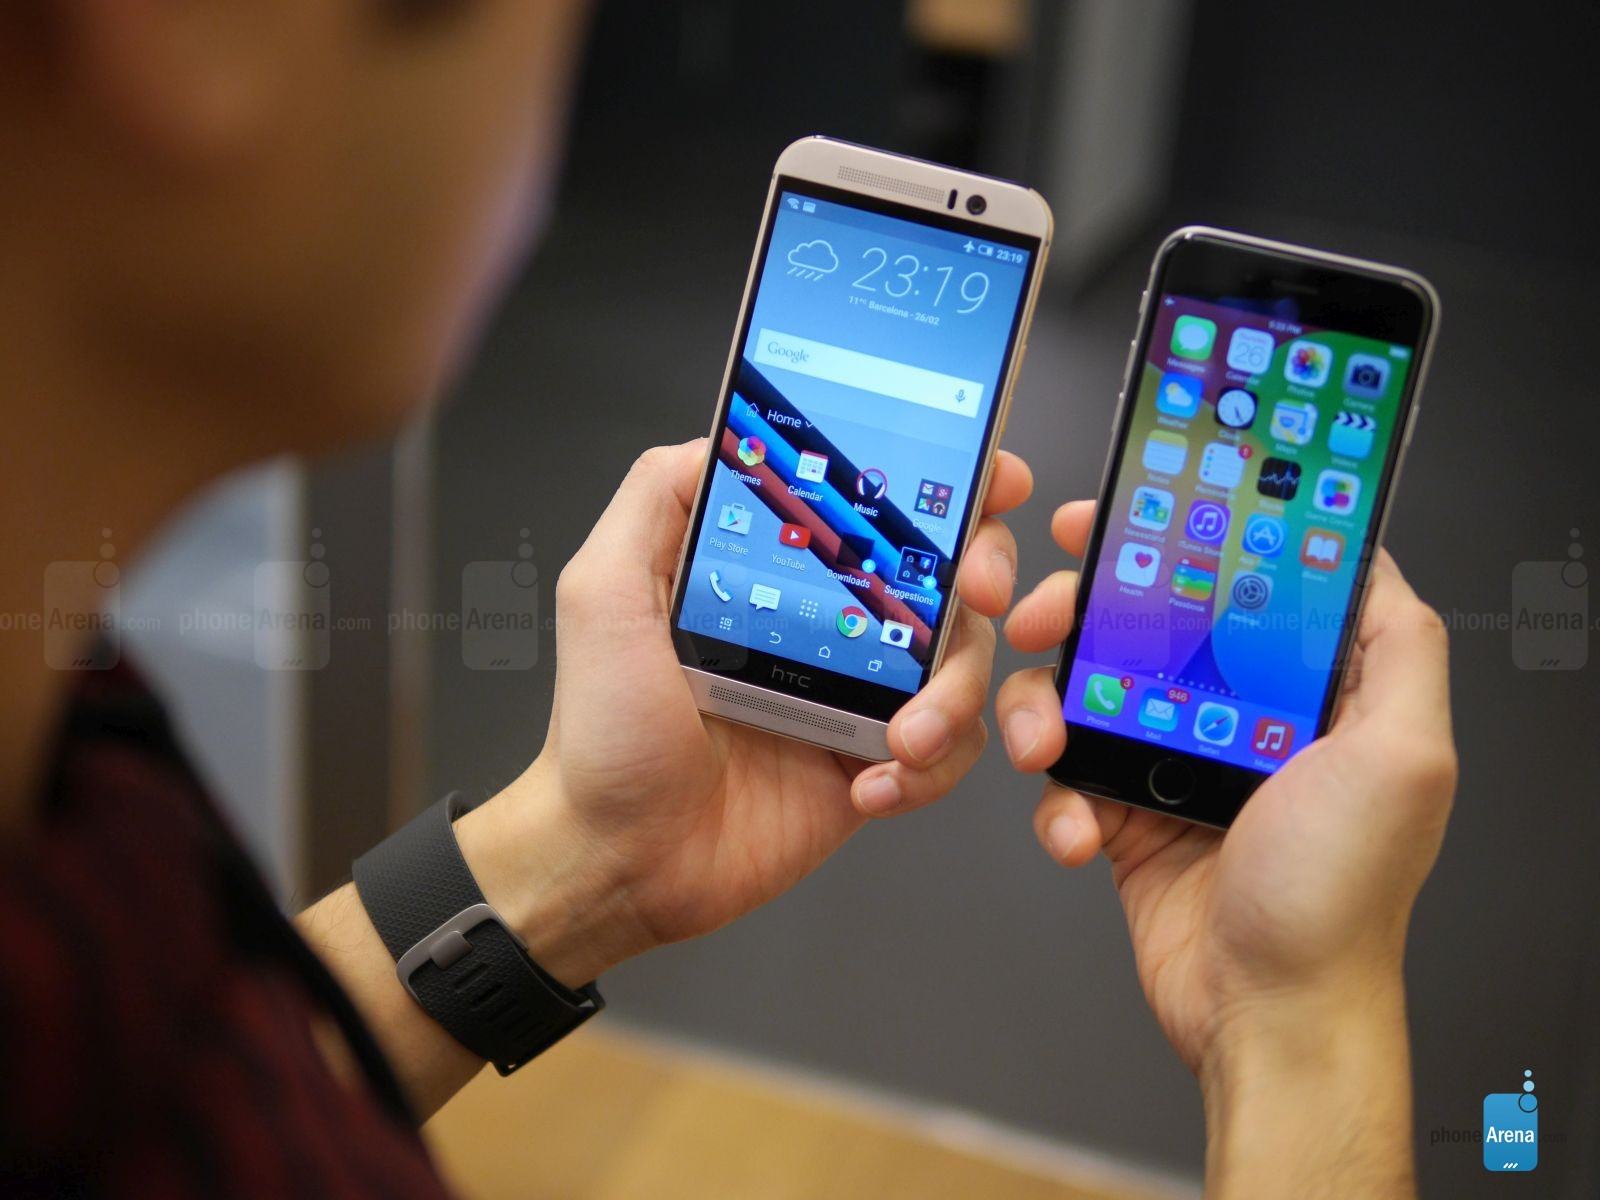 HTC ONE M9 IPHONE 6 comparatie 5